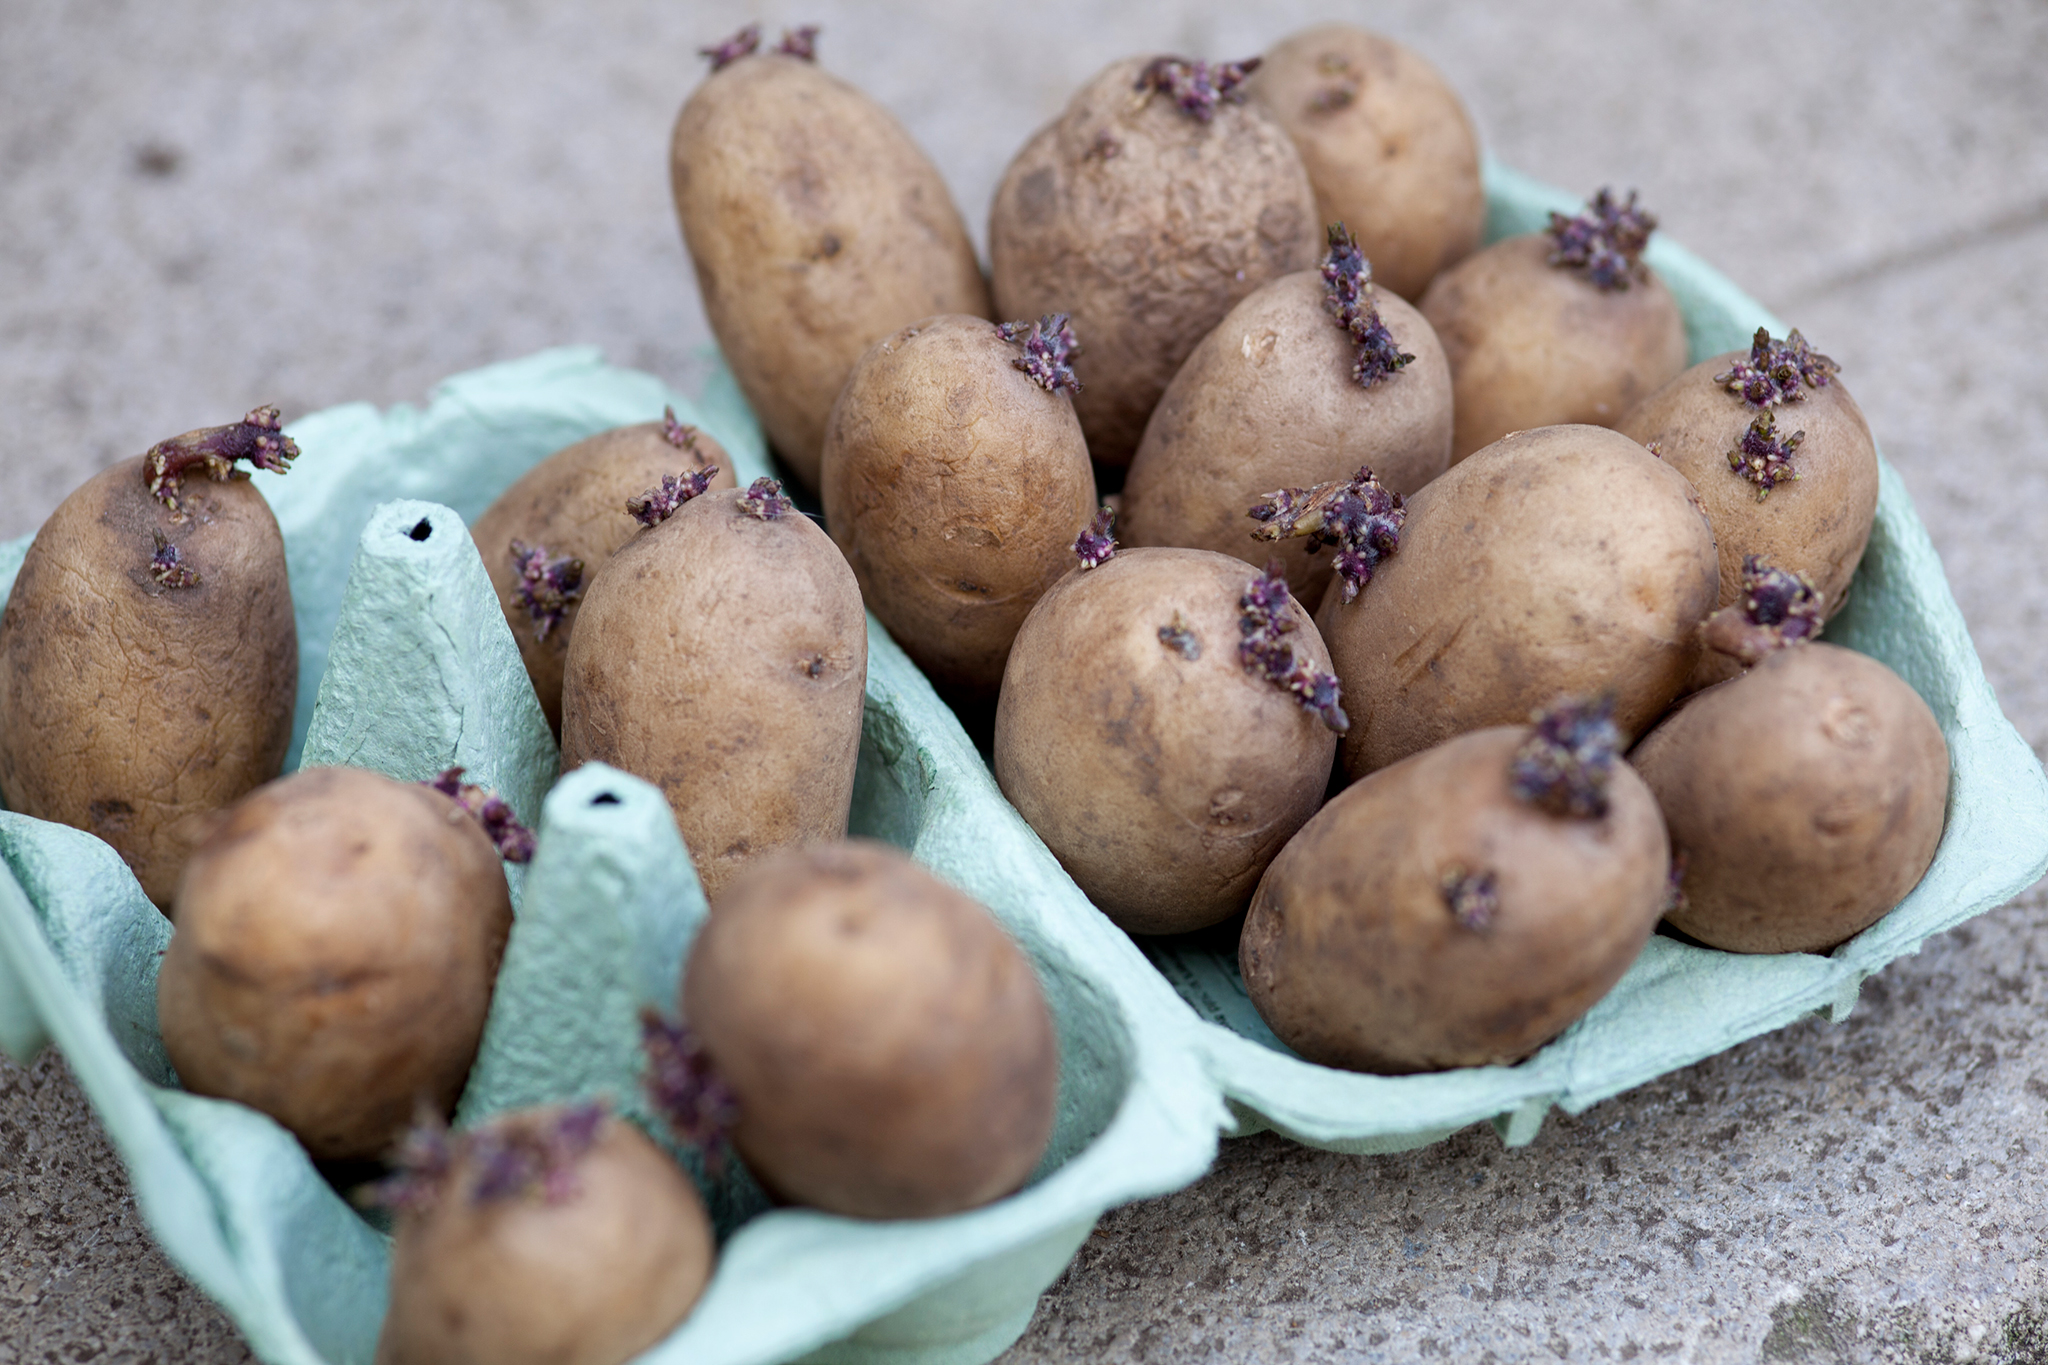 chitting-potatoes-5